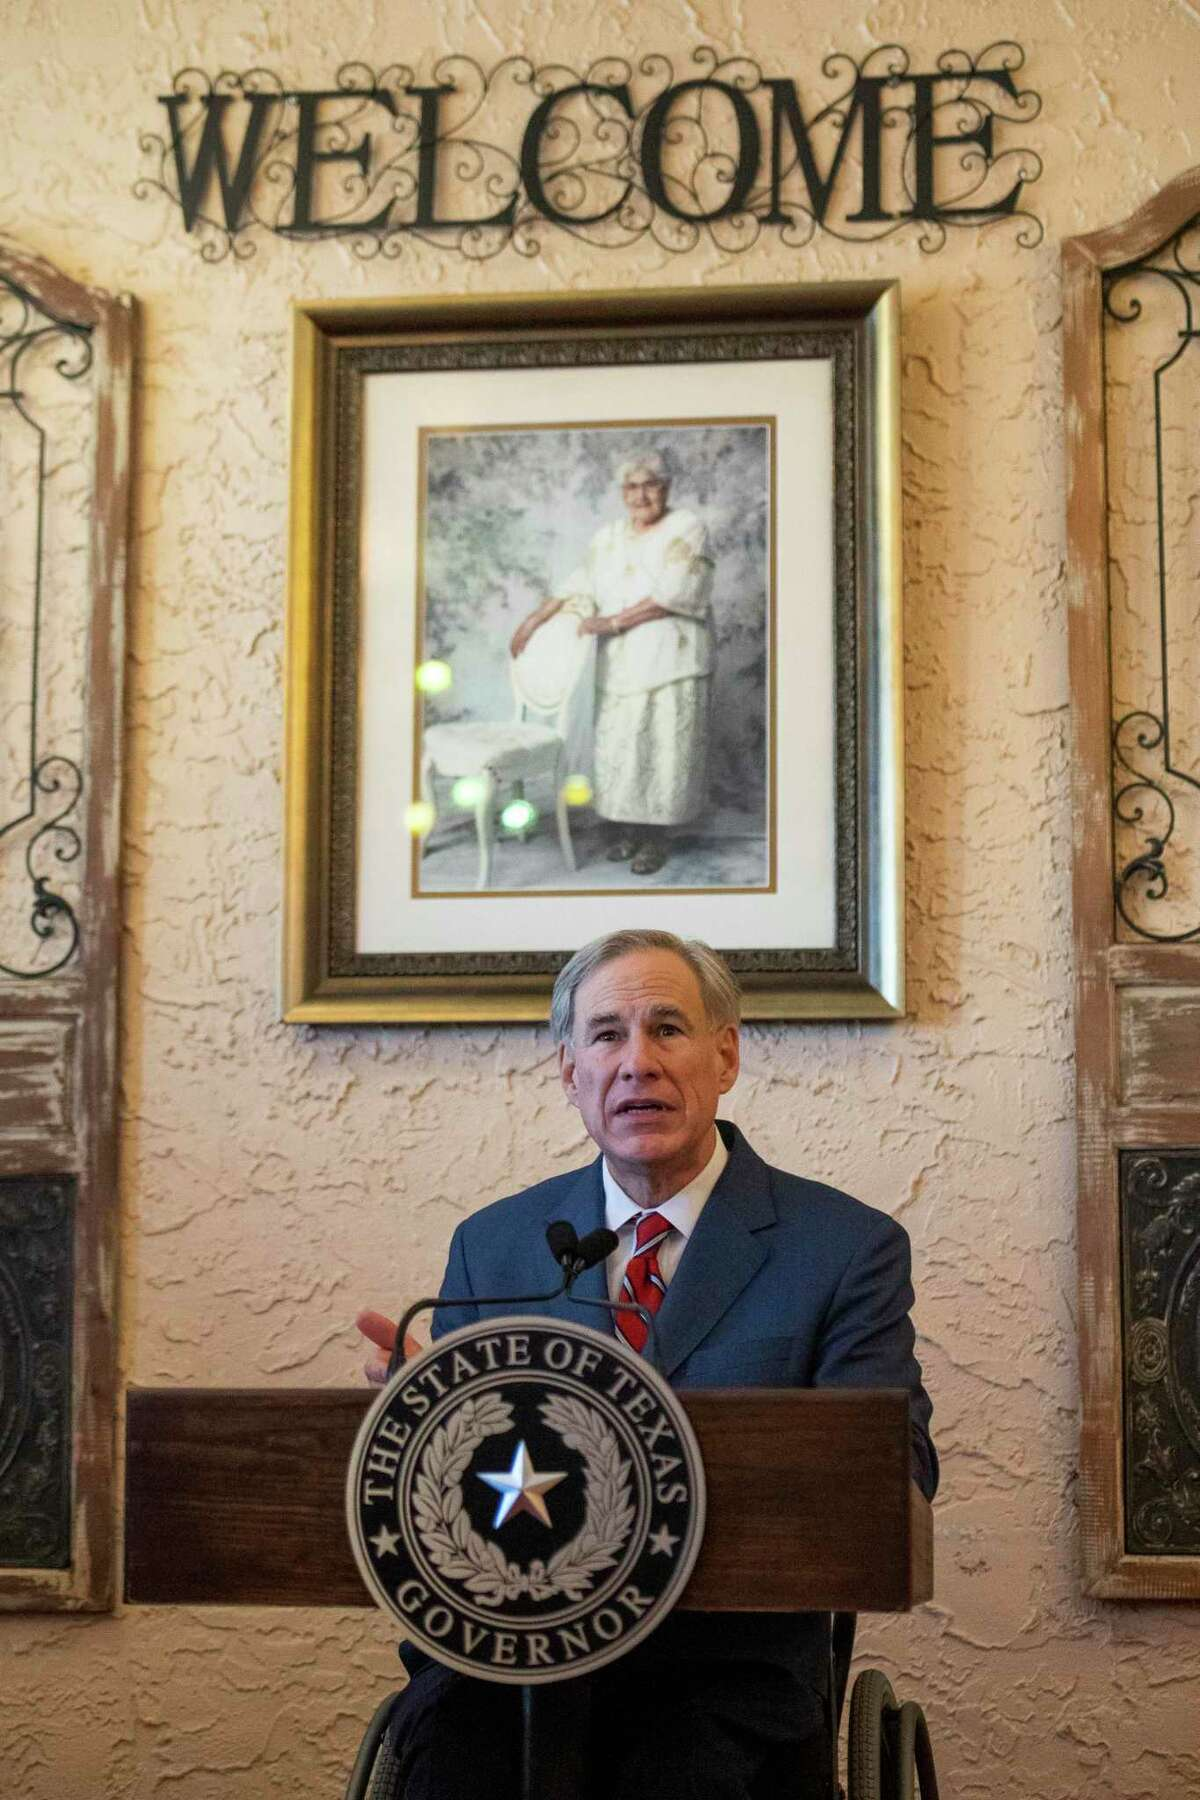 Gov. Greg Abbott says the state restrictions to limit the spread of the coronavirus are no longer needed. Many disagree.